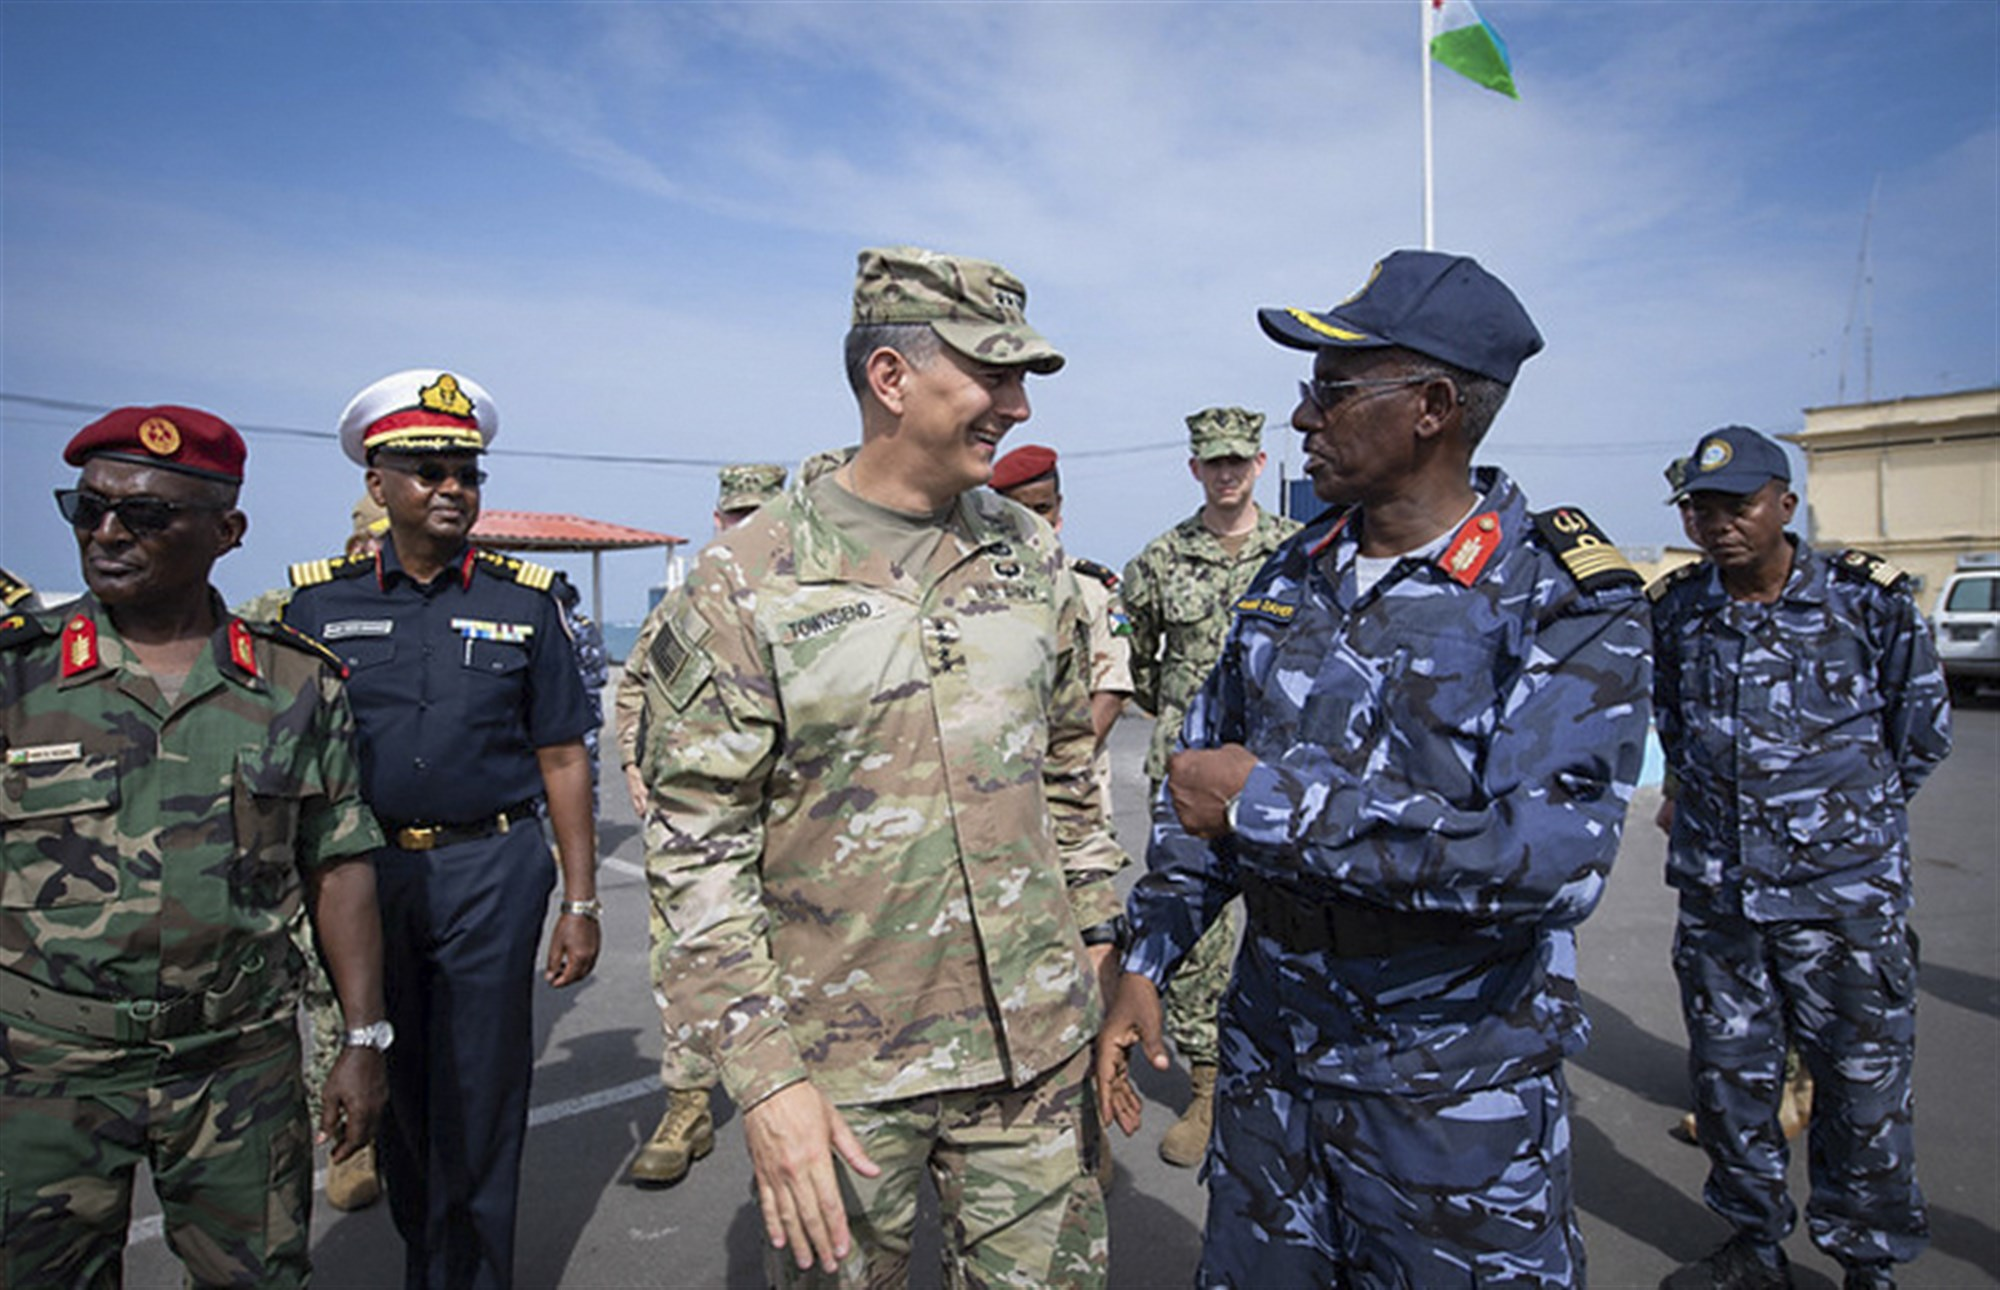 U.S. Army Gen. Stephen J. Townsend, commander, U.S. Africa Command, speaks to Col. Ahmed Daher Djama, commander, Djiboutian navy, at the conclusion of a visit to the Djiboutian navy base during exercise Cutlass Express 2019.2 and International Maritime Exercise 2019 in Djibouti, Djibouti Nov. 4. Cutlass Express is designed to improve regional cooperation, maritime domain awareness and information sharing practices to increase capabilities between the U.S., East African and Western Indian Ocean nations to counter illicit maritime activity. (U.S. Navy photo by Mass Communication Specialist Seaman Andrea Rumple)